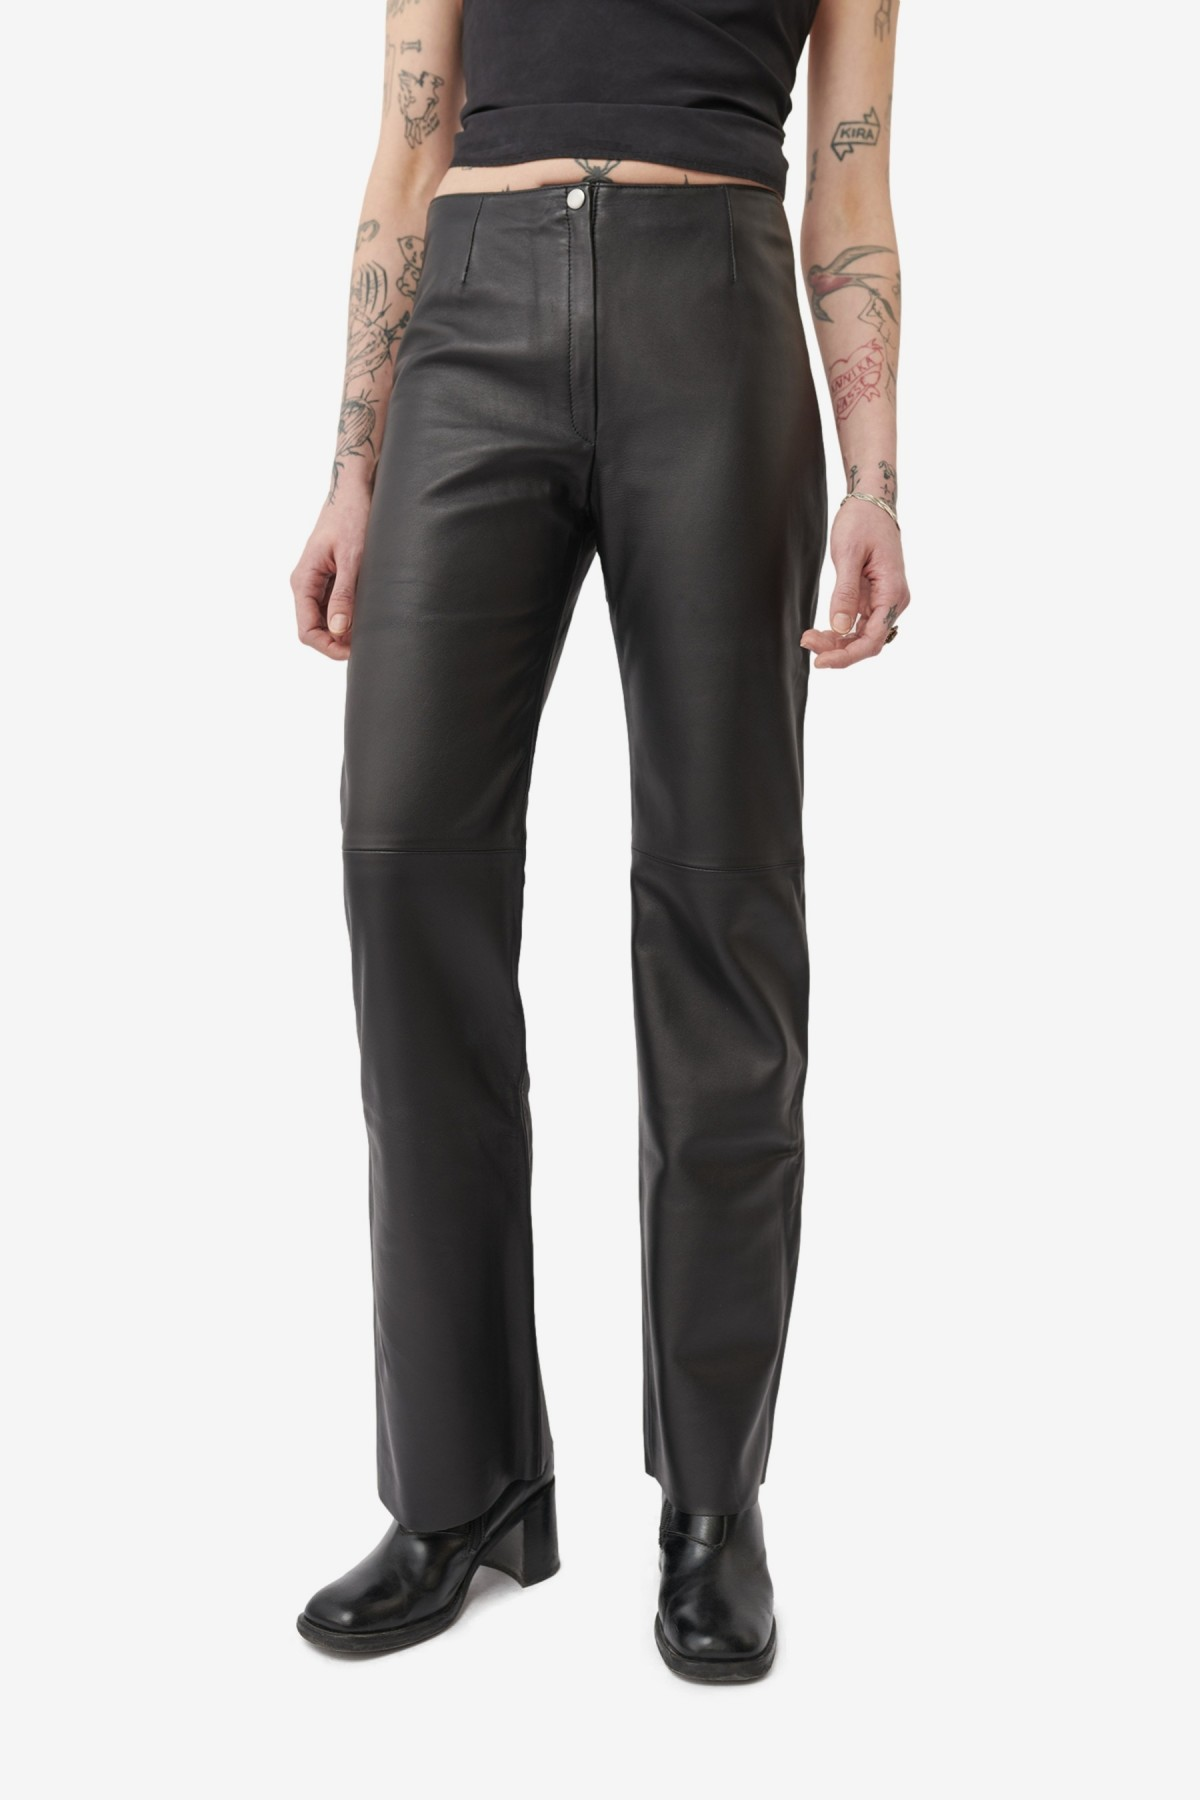 Our Legacy Biker Trouser in Black Leather